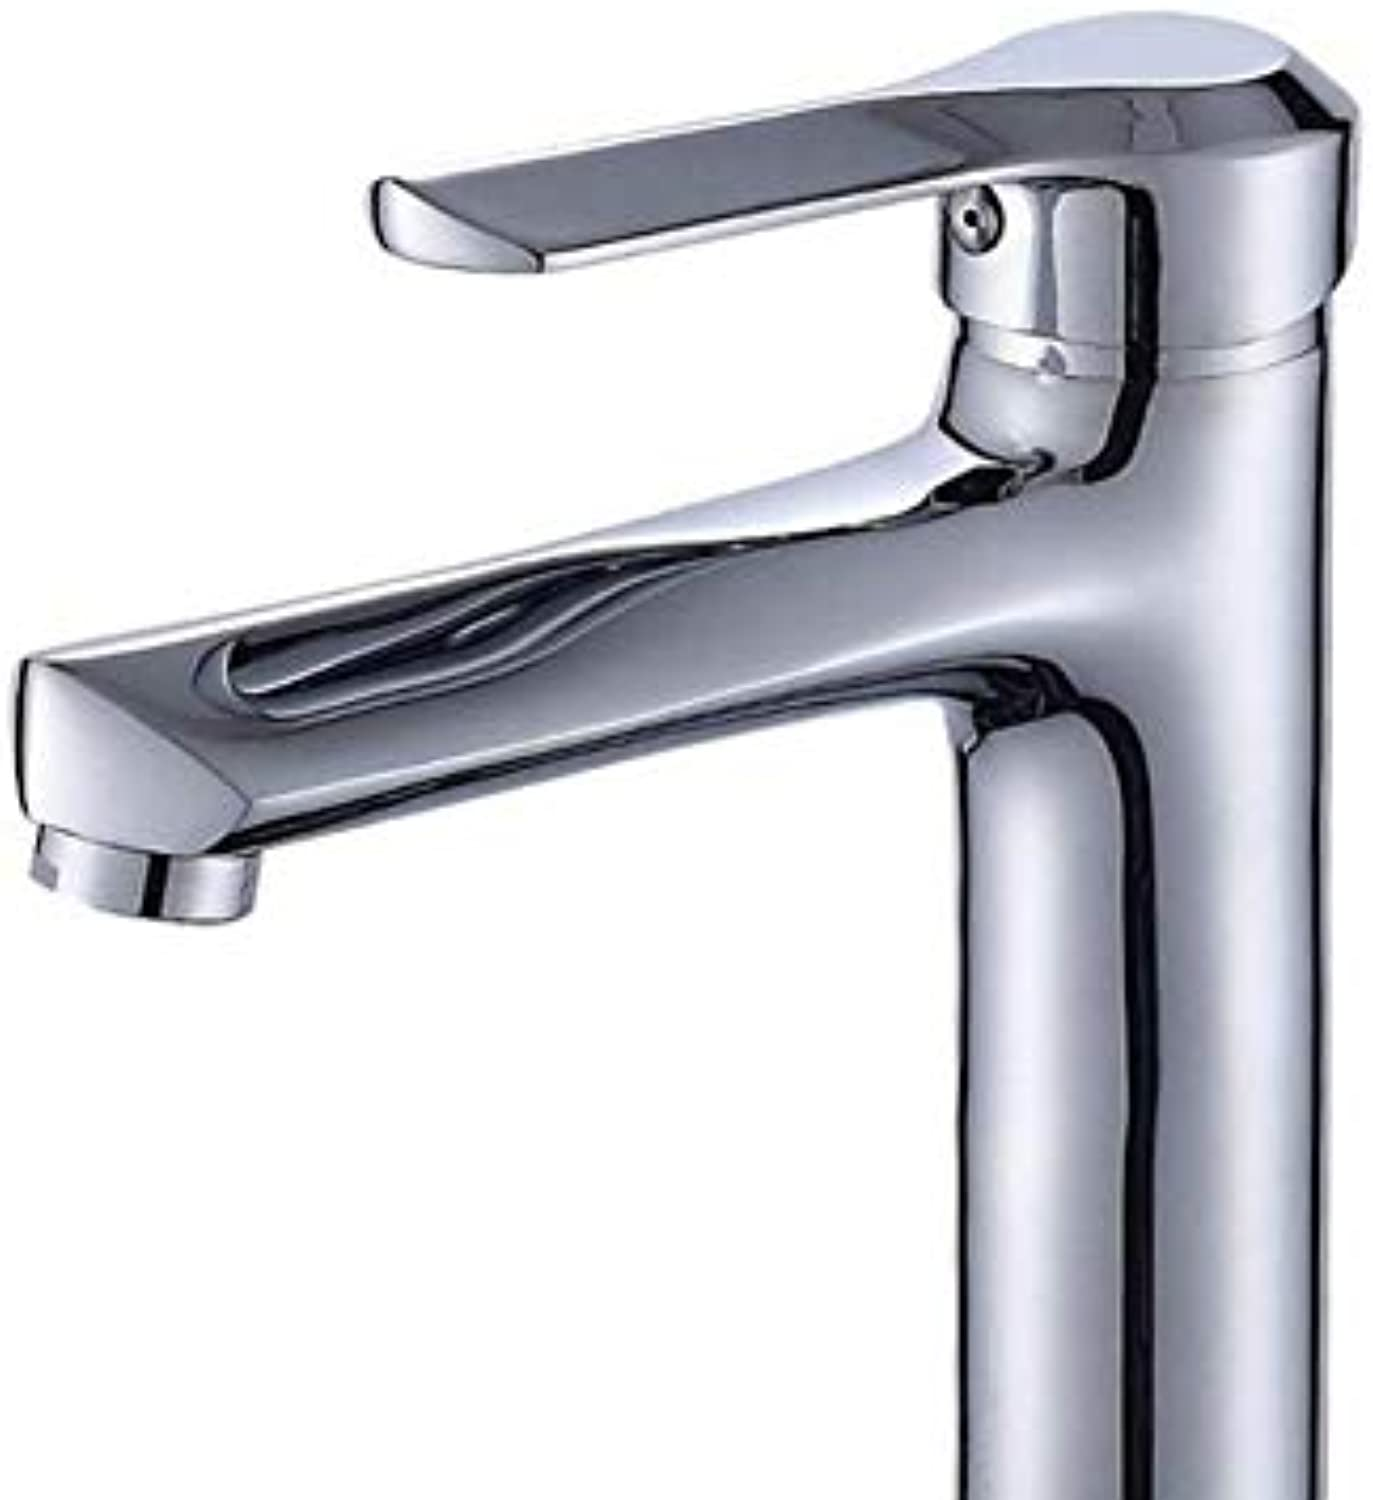 Taps Kitchen Sinkbathroom Washbasin Copper Hot and Cold Water Faucet Toilet Basin Basin